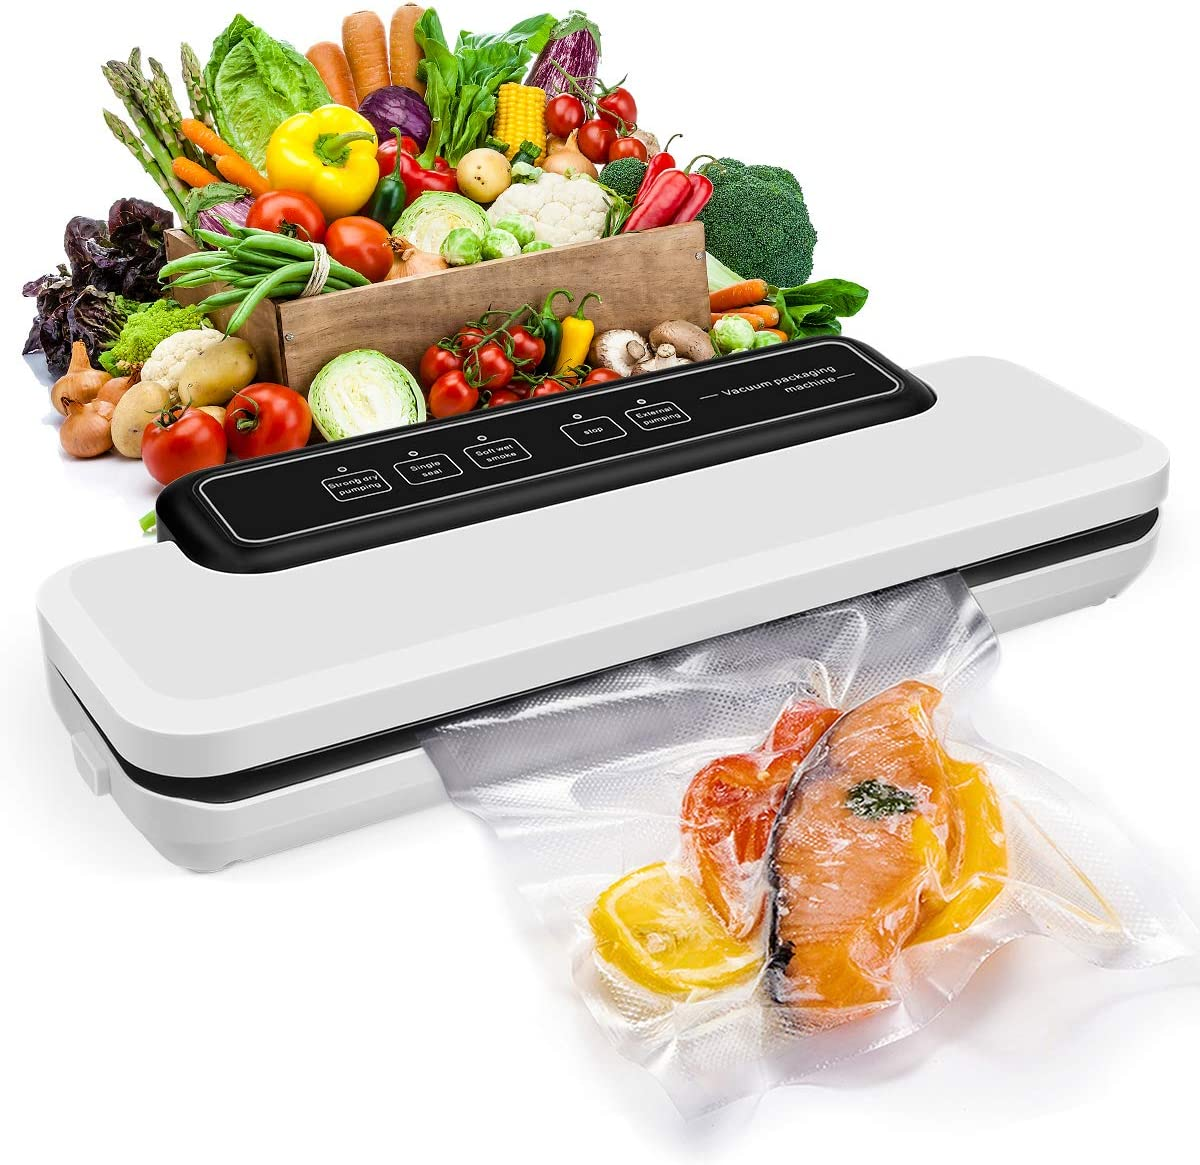 Vacuum Sealer Machine, Automatic Food Saver One-Touch Safe Operation, Easy to Clean| Dry & Moist Food Modes| Compact Design Kit of Rolls & Hose & Replaceable Bags